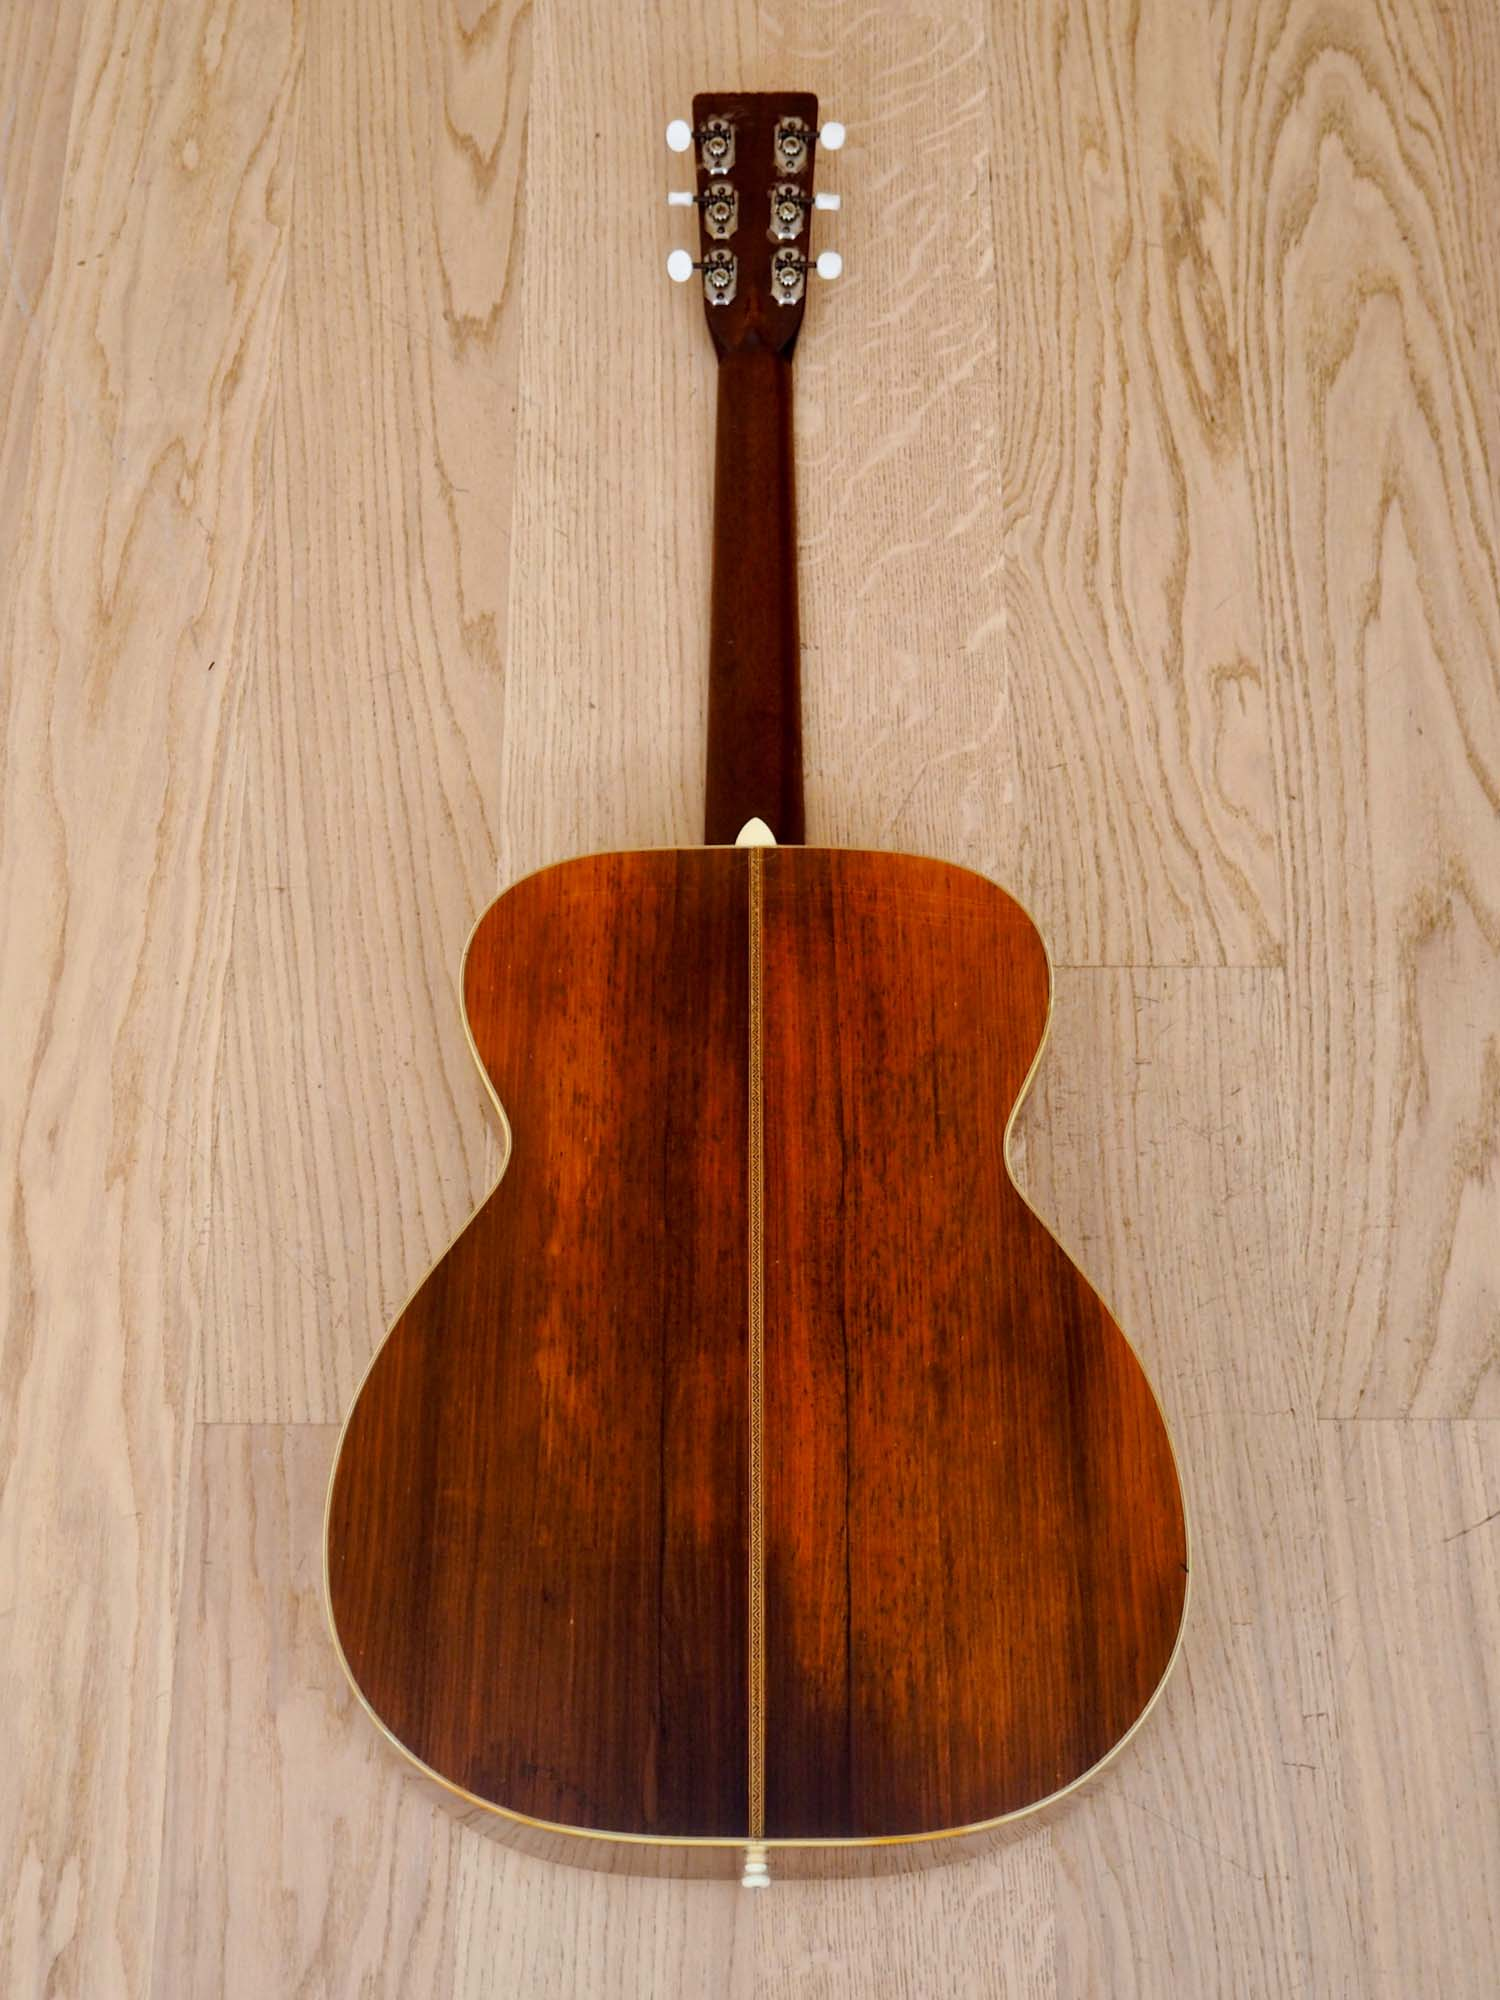 1942 Martin 000-28 Vintage Wartime Herringbone Acoustic Guitar w/ Case